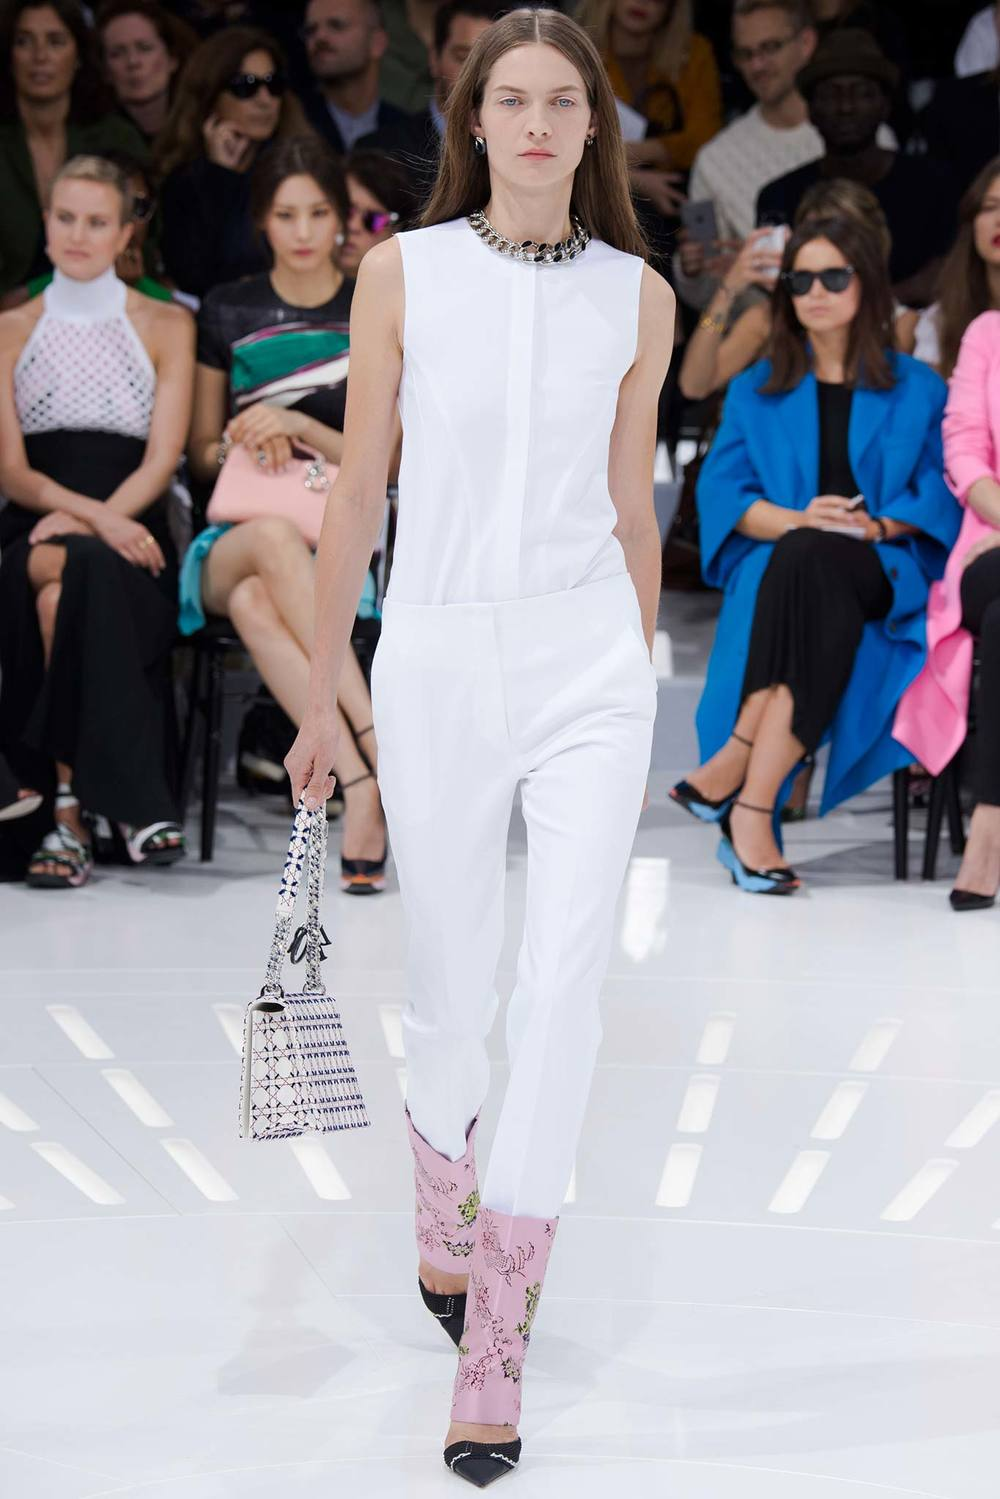 Christian Dior s/s 2015, look 2. Source: Style.com